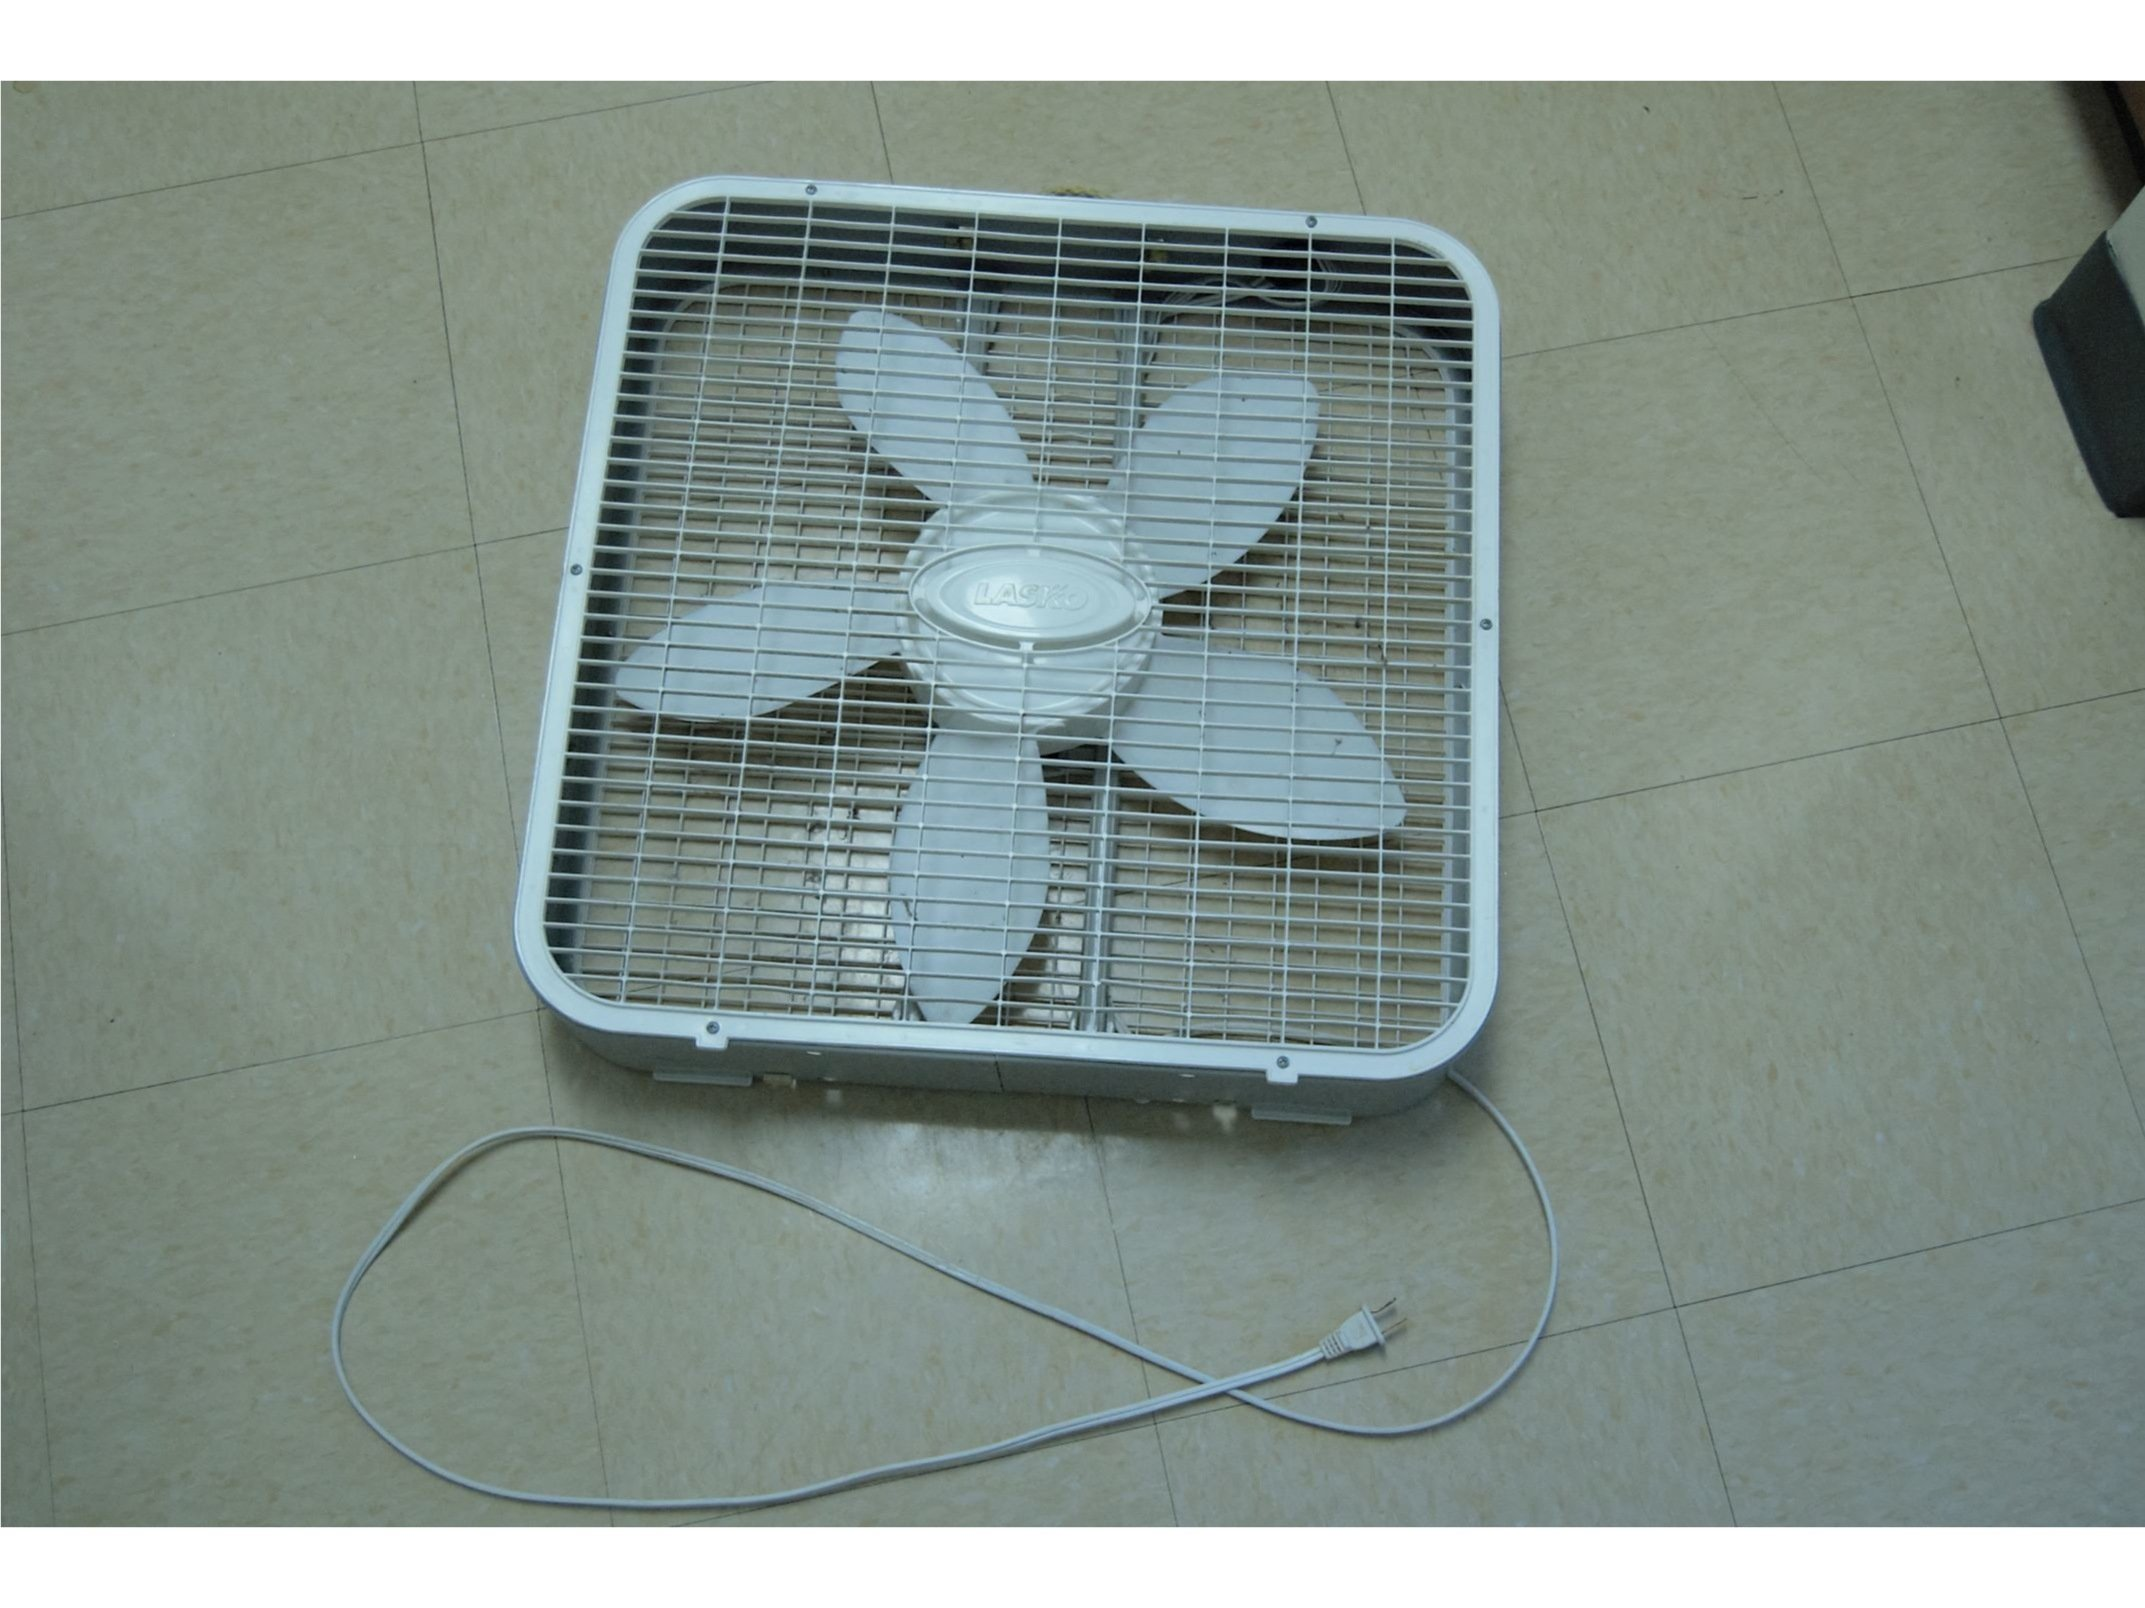 lasko box fan back wire repair